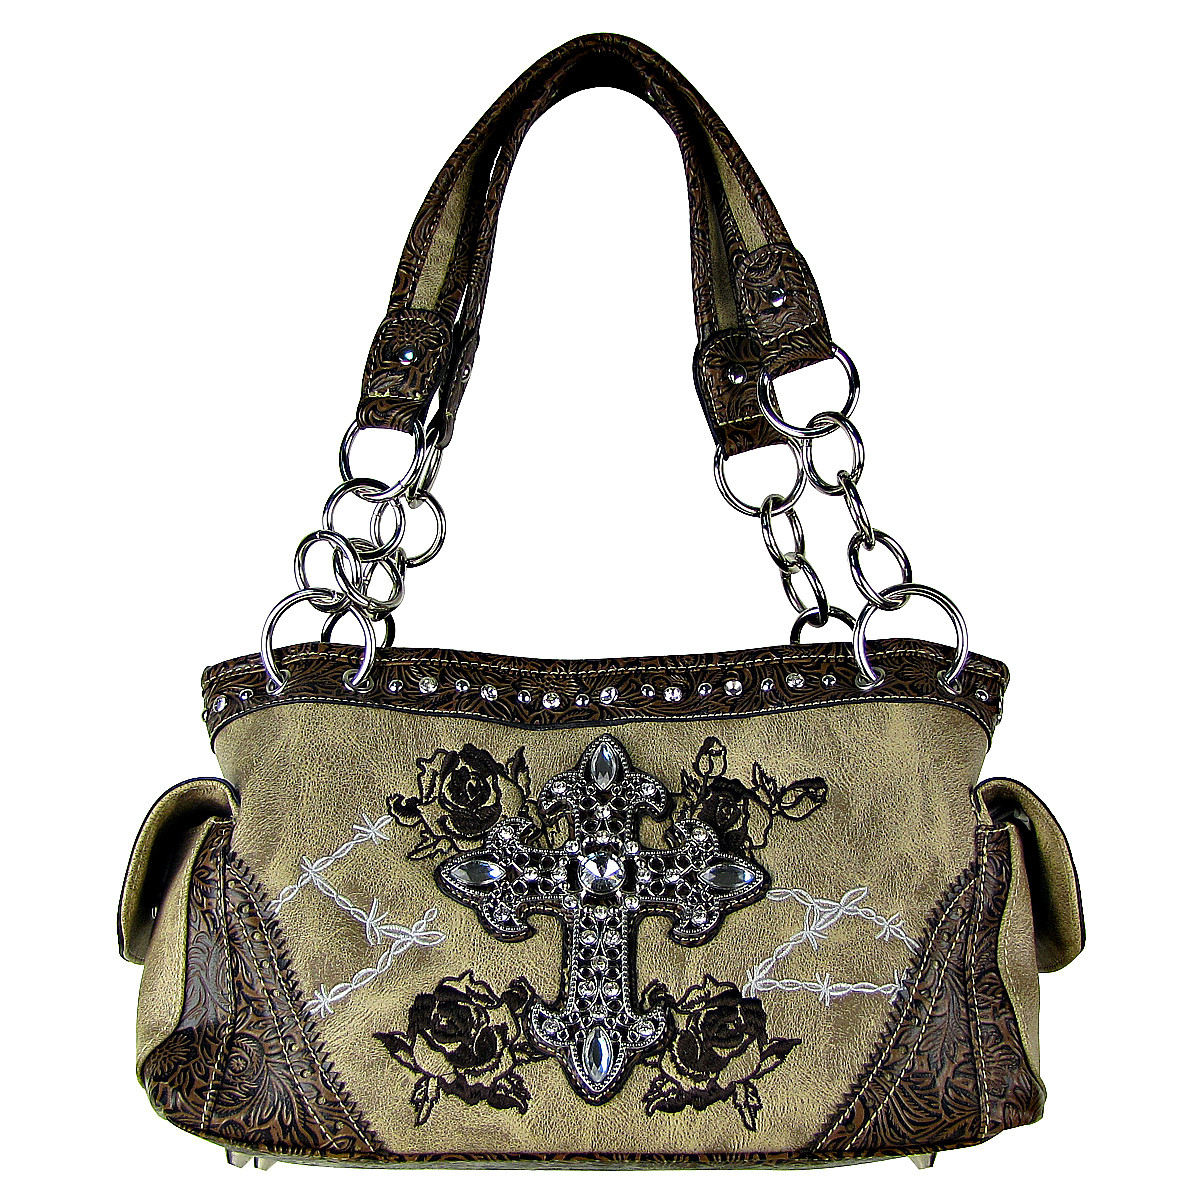 BEIGE STITCHED WESTERN ROSE CROSS LOOK SHOULDER HANDBAG HB1-CHF0018BEI